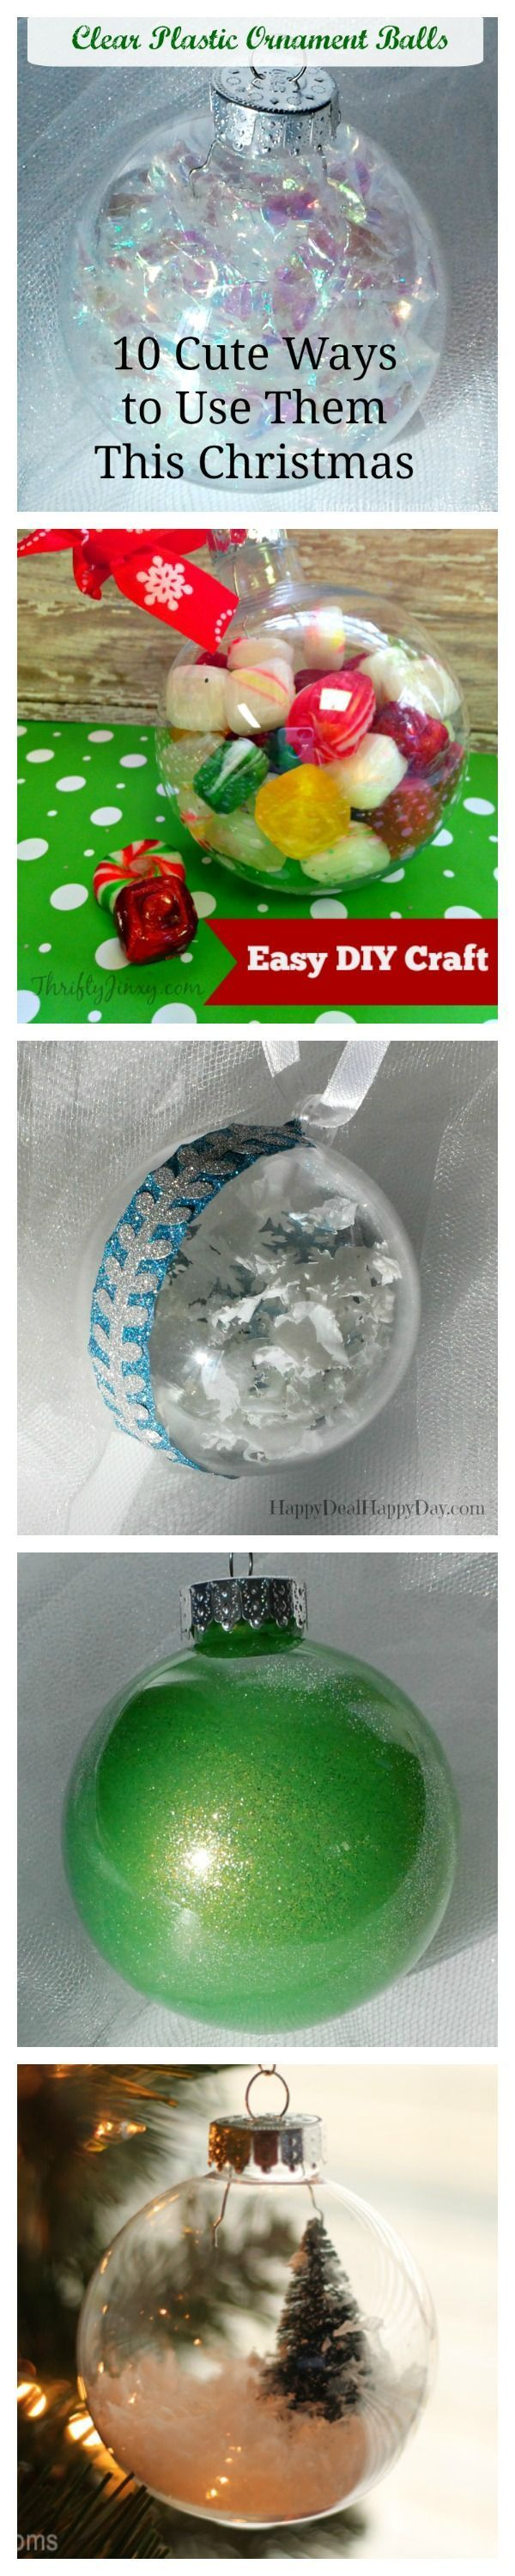 Best 25 clear plastic ornaments ideas on pinterest for Clear plastic balls for crafts